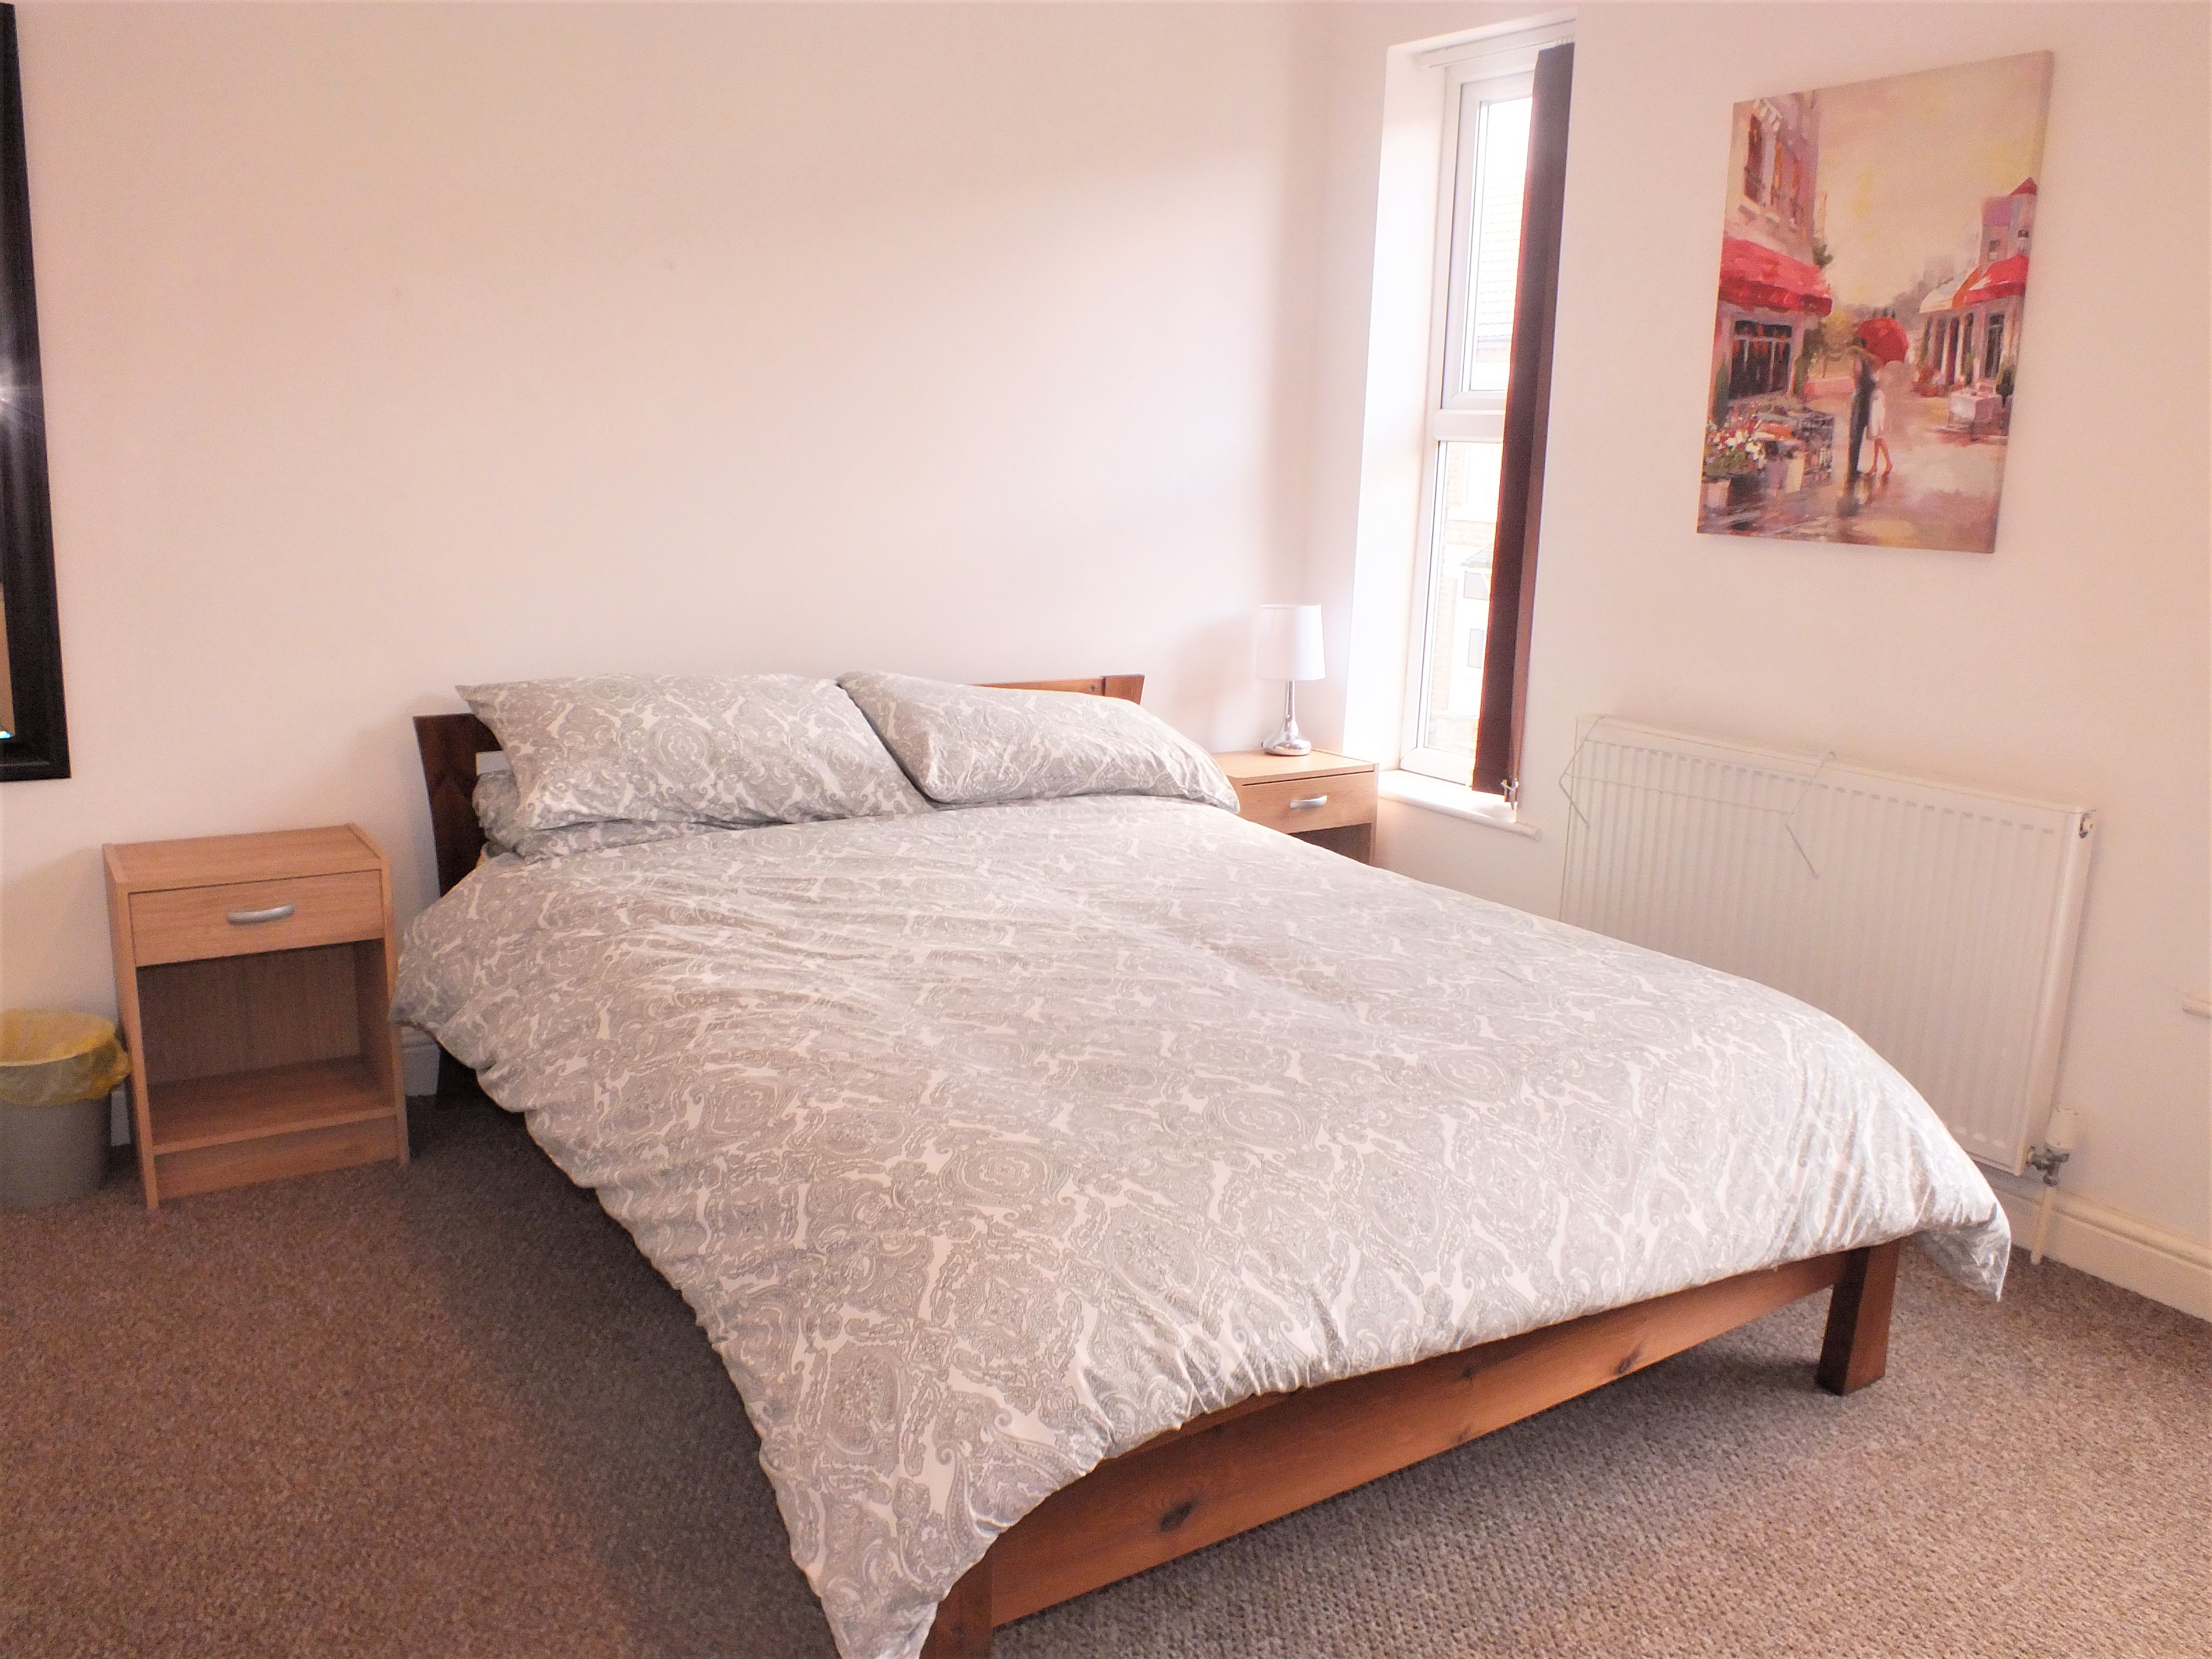 Room to Rent on Buxton Avenue, Crewe